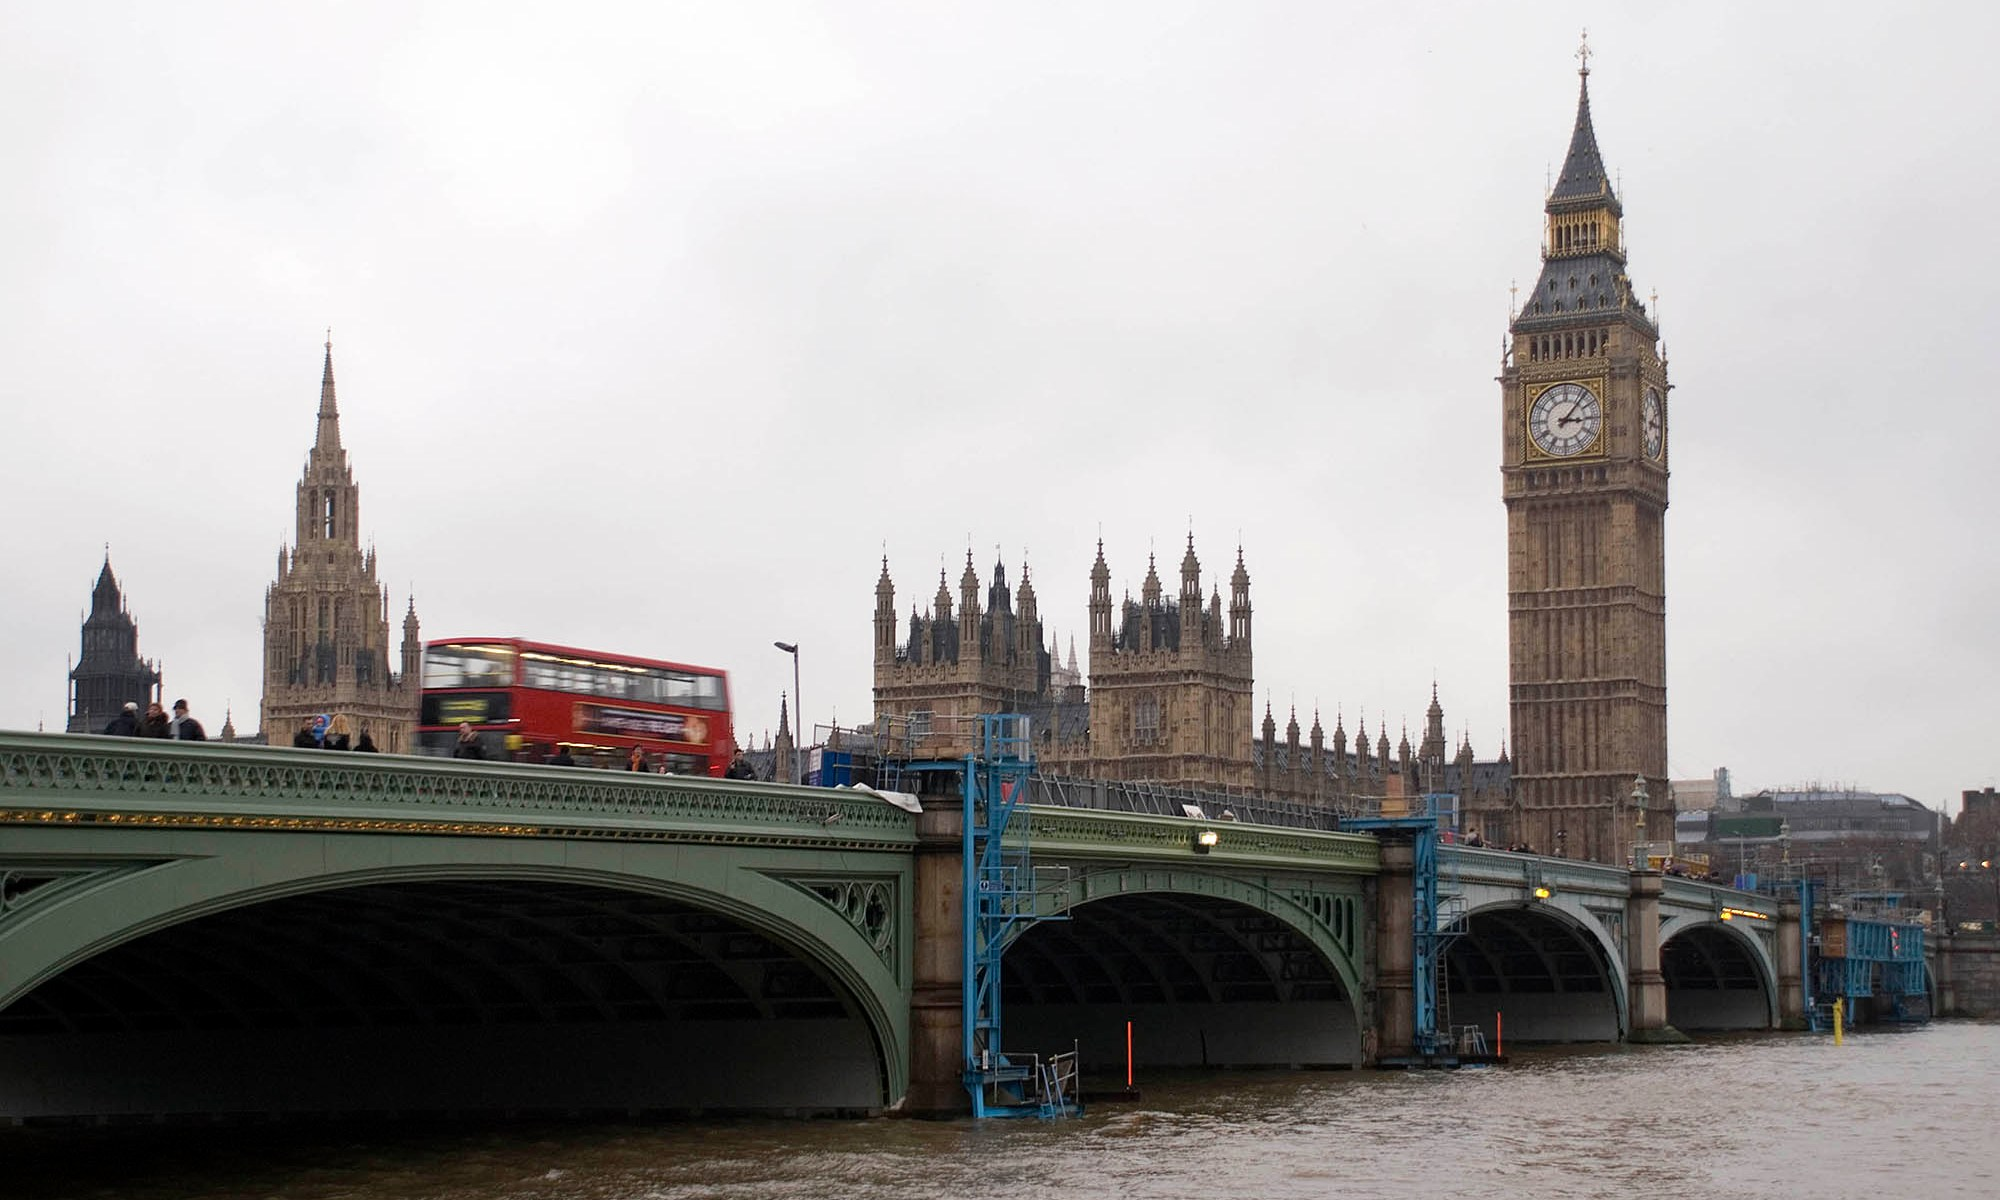 London's Westminster Bridge with Big Ben